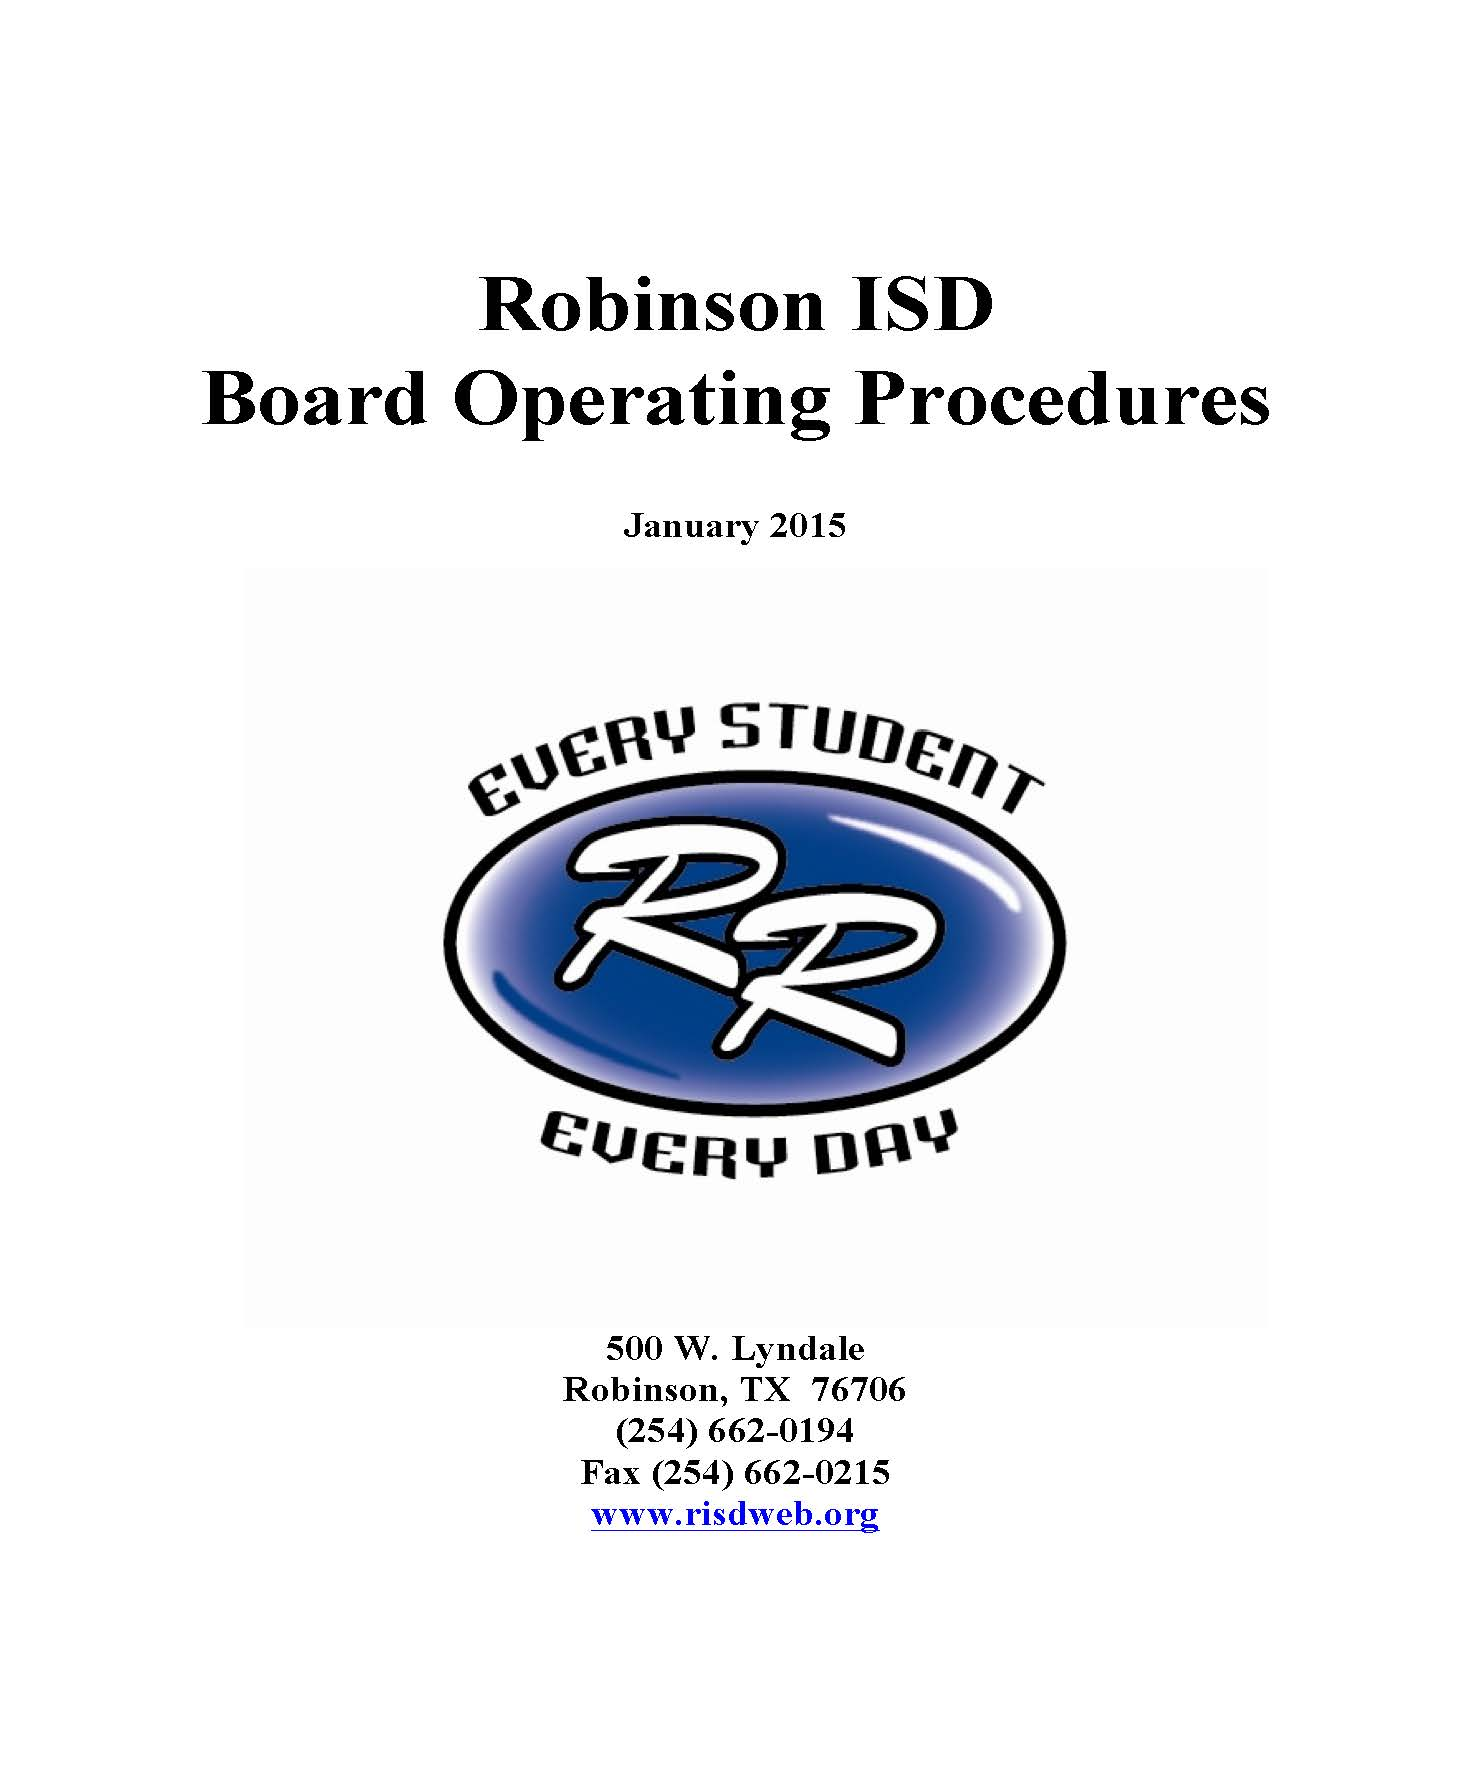 RISD Board Operating Procedures Page 1